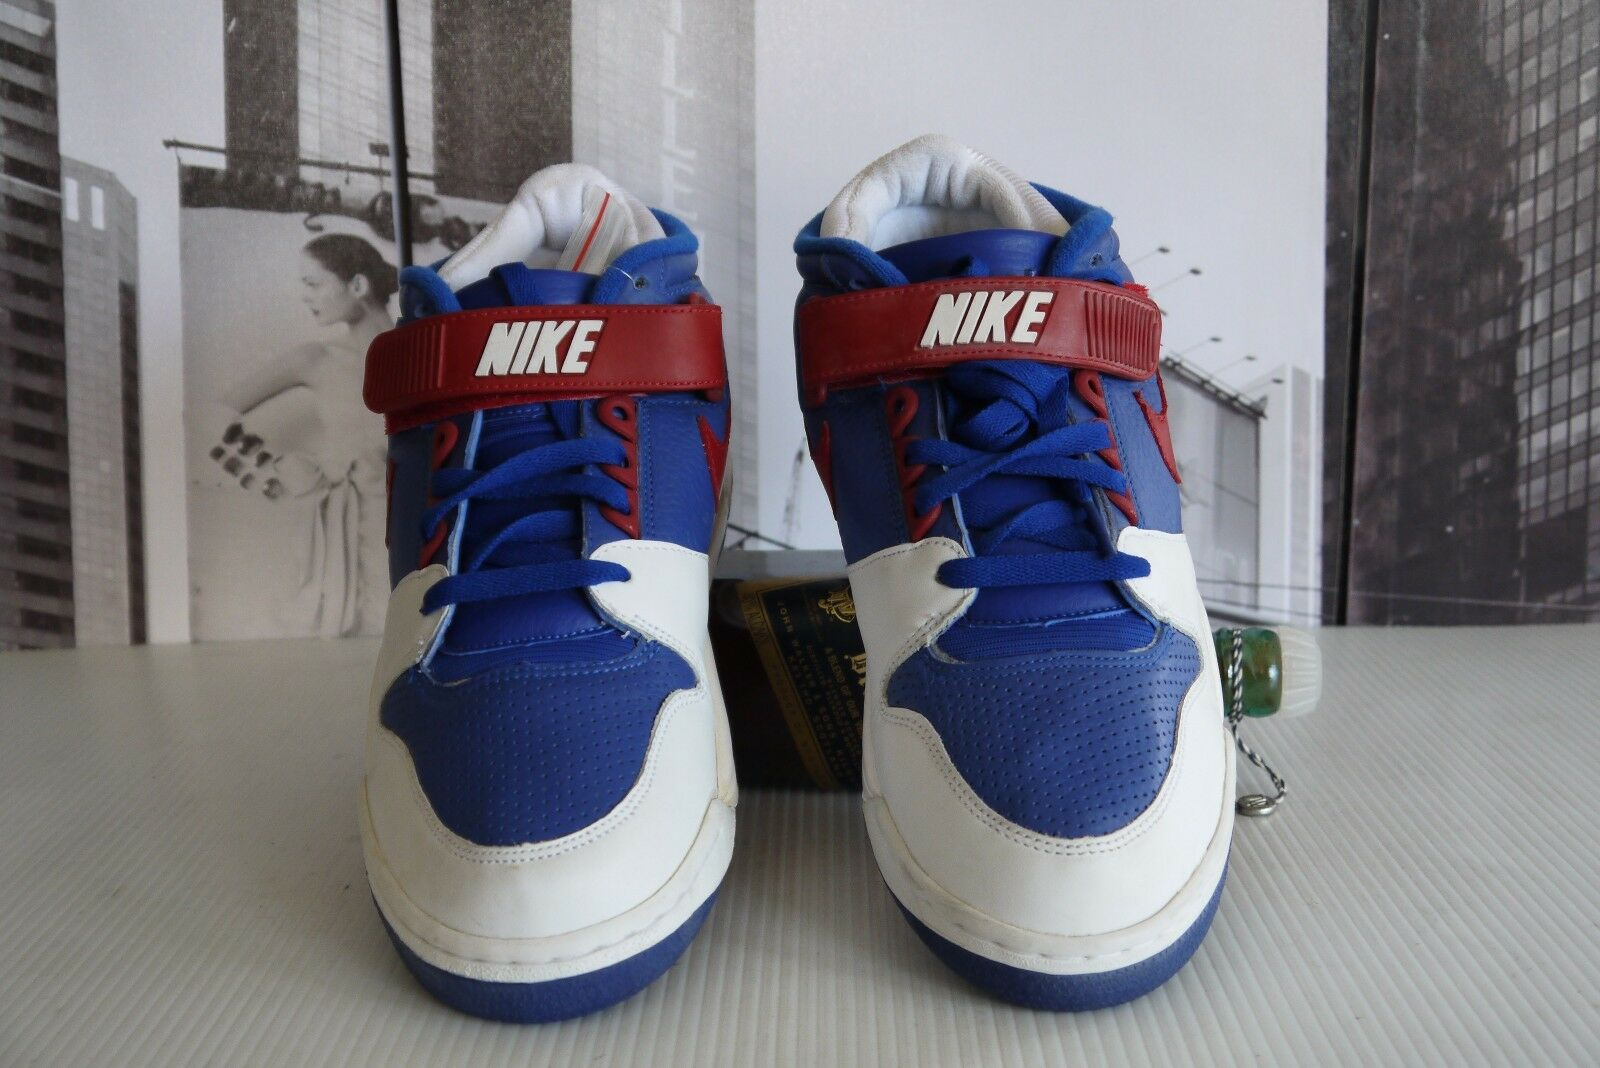 new arrival 33ca0 46b0a ... 2004 2004 2004 NIKE AIR REVOLUTION MID uomo US 9.5 EU 43 Must Have  Leather ...